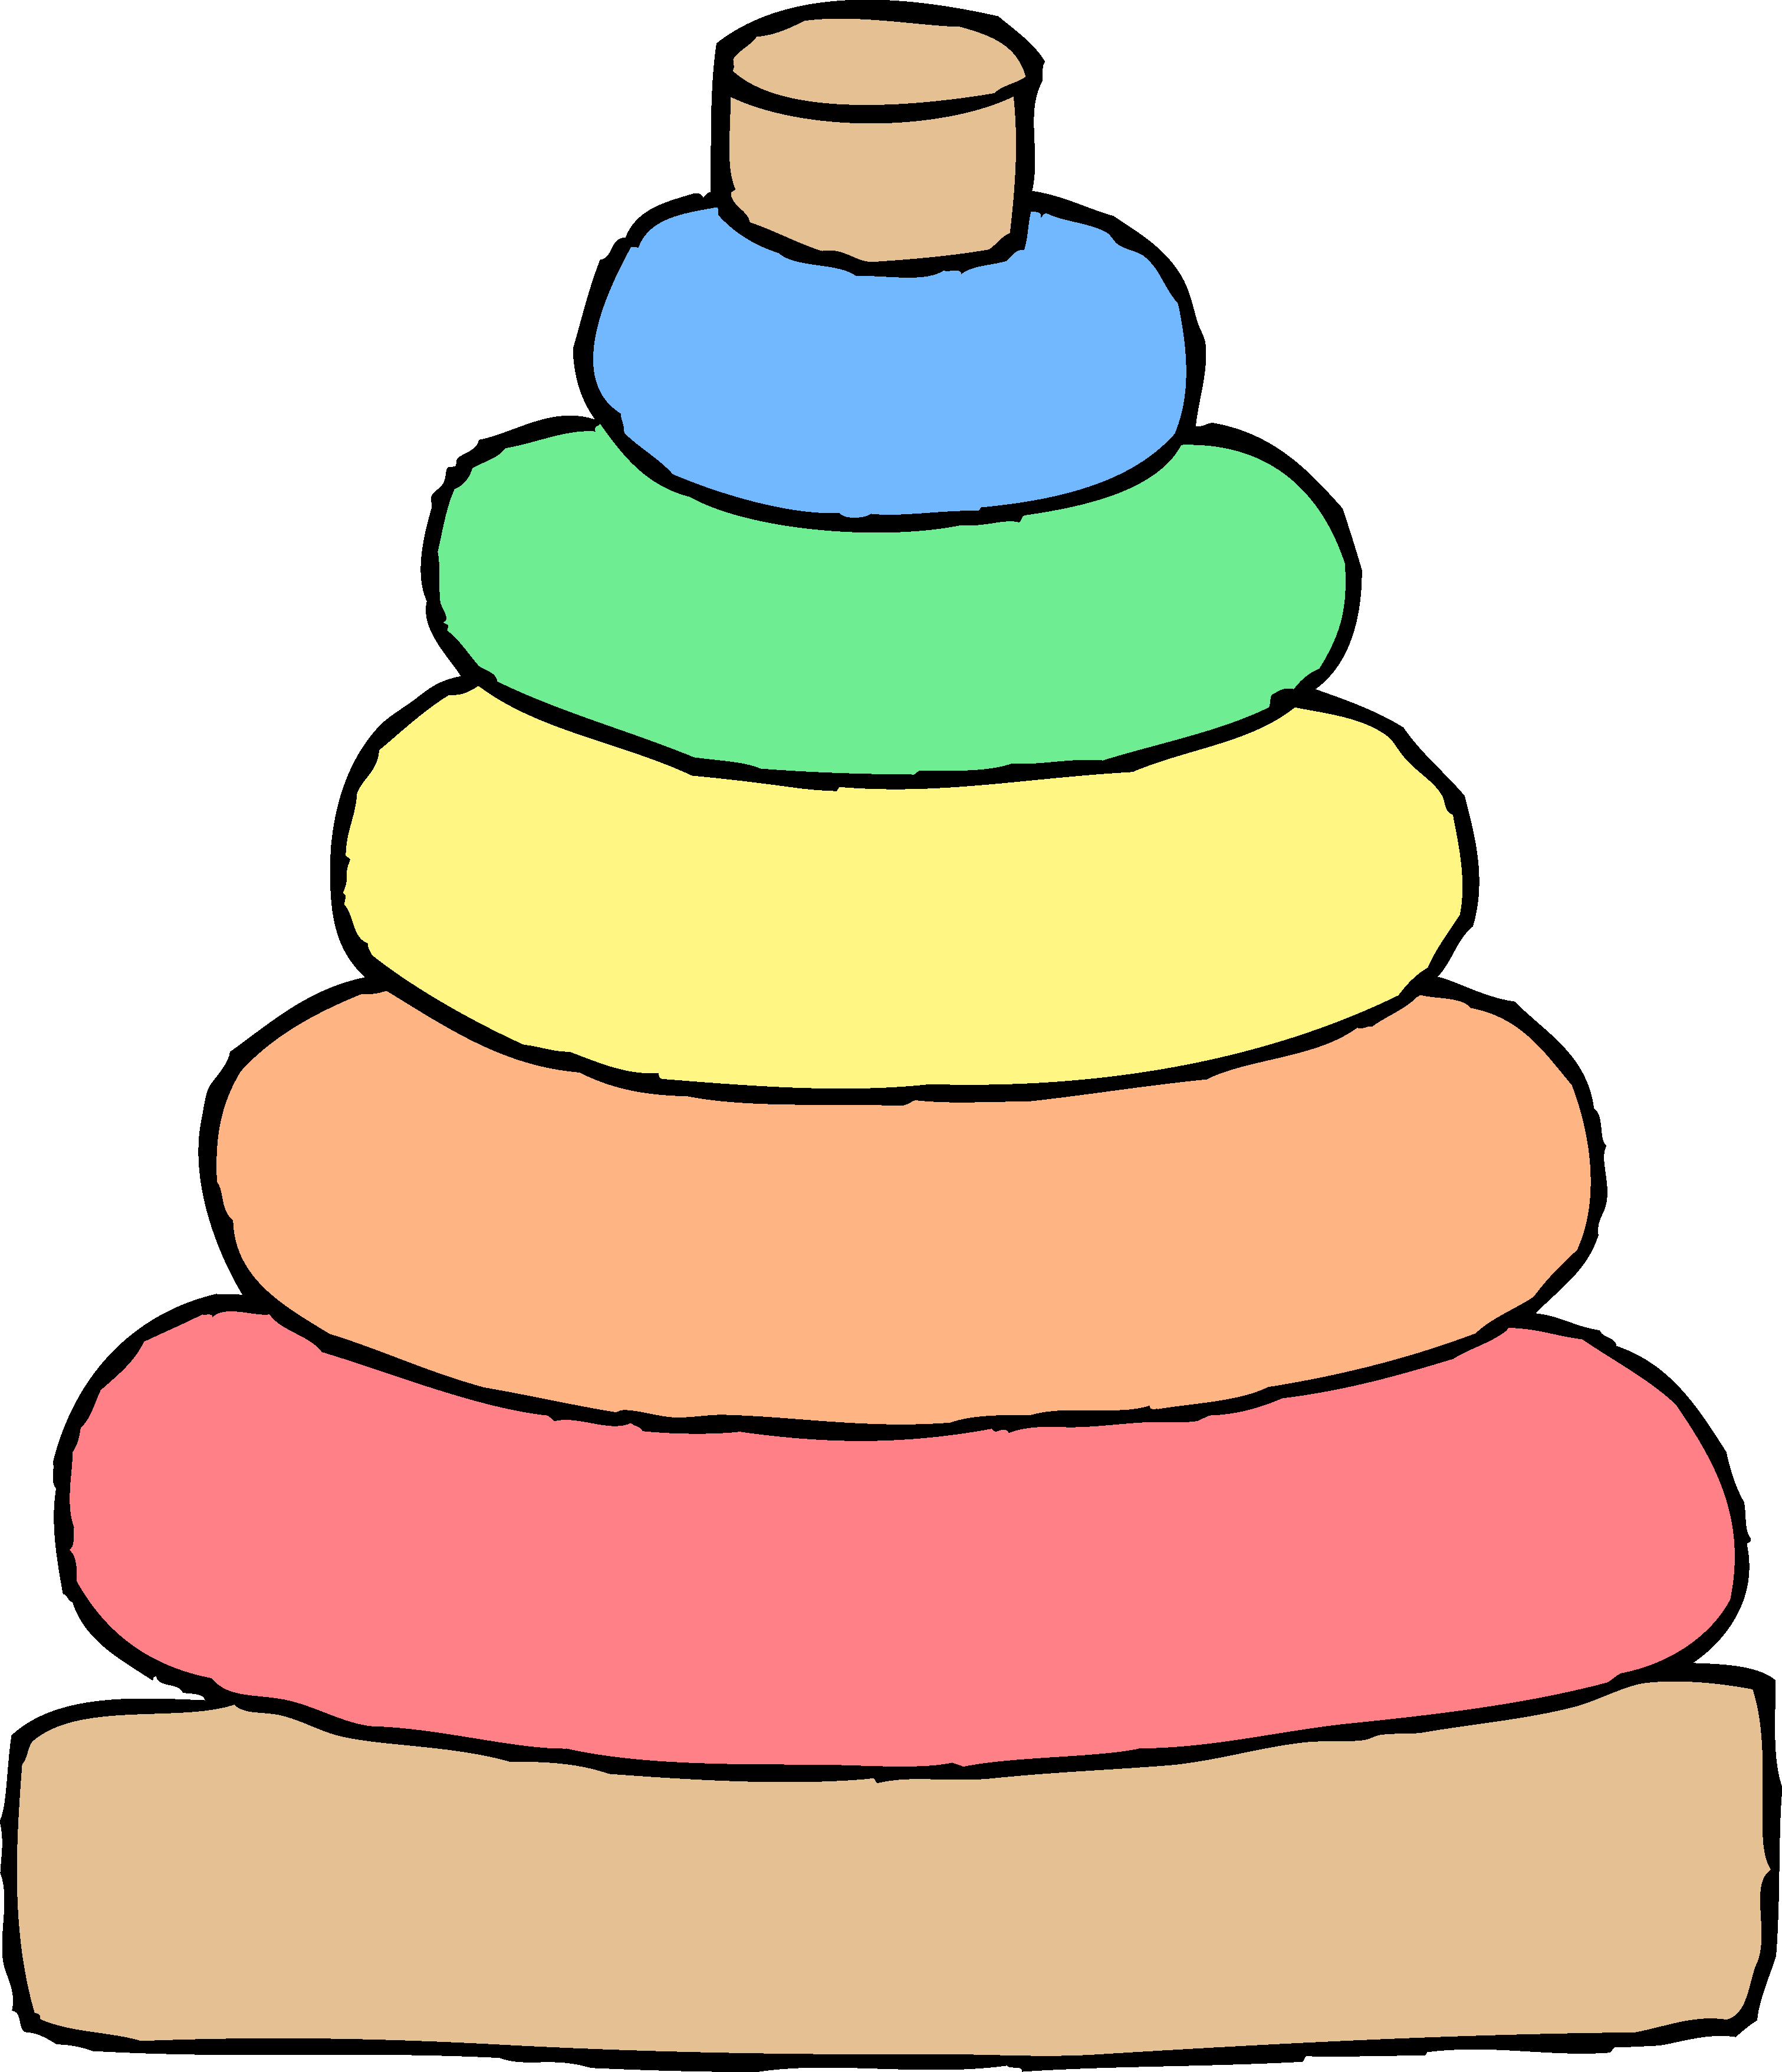 Baby Stacking Toy Clipart - Free Clip Art